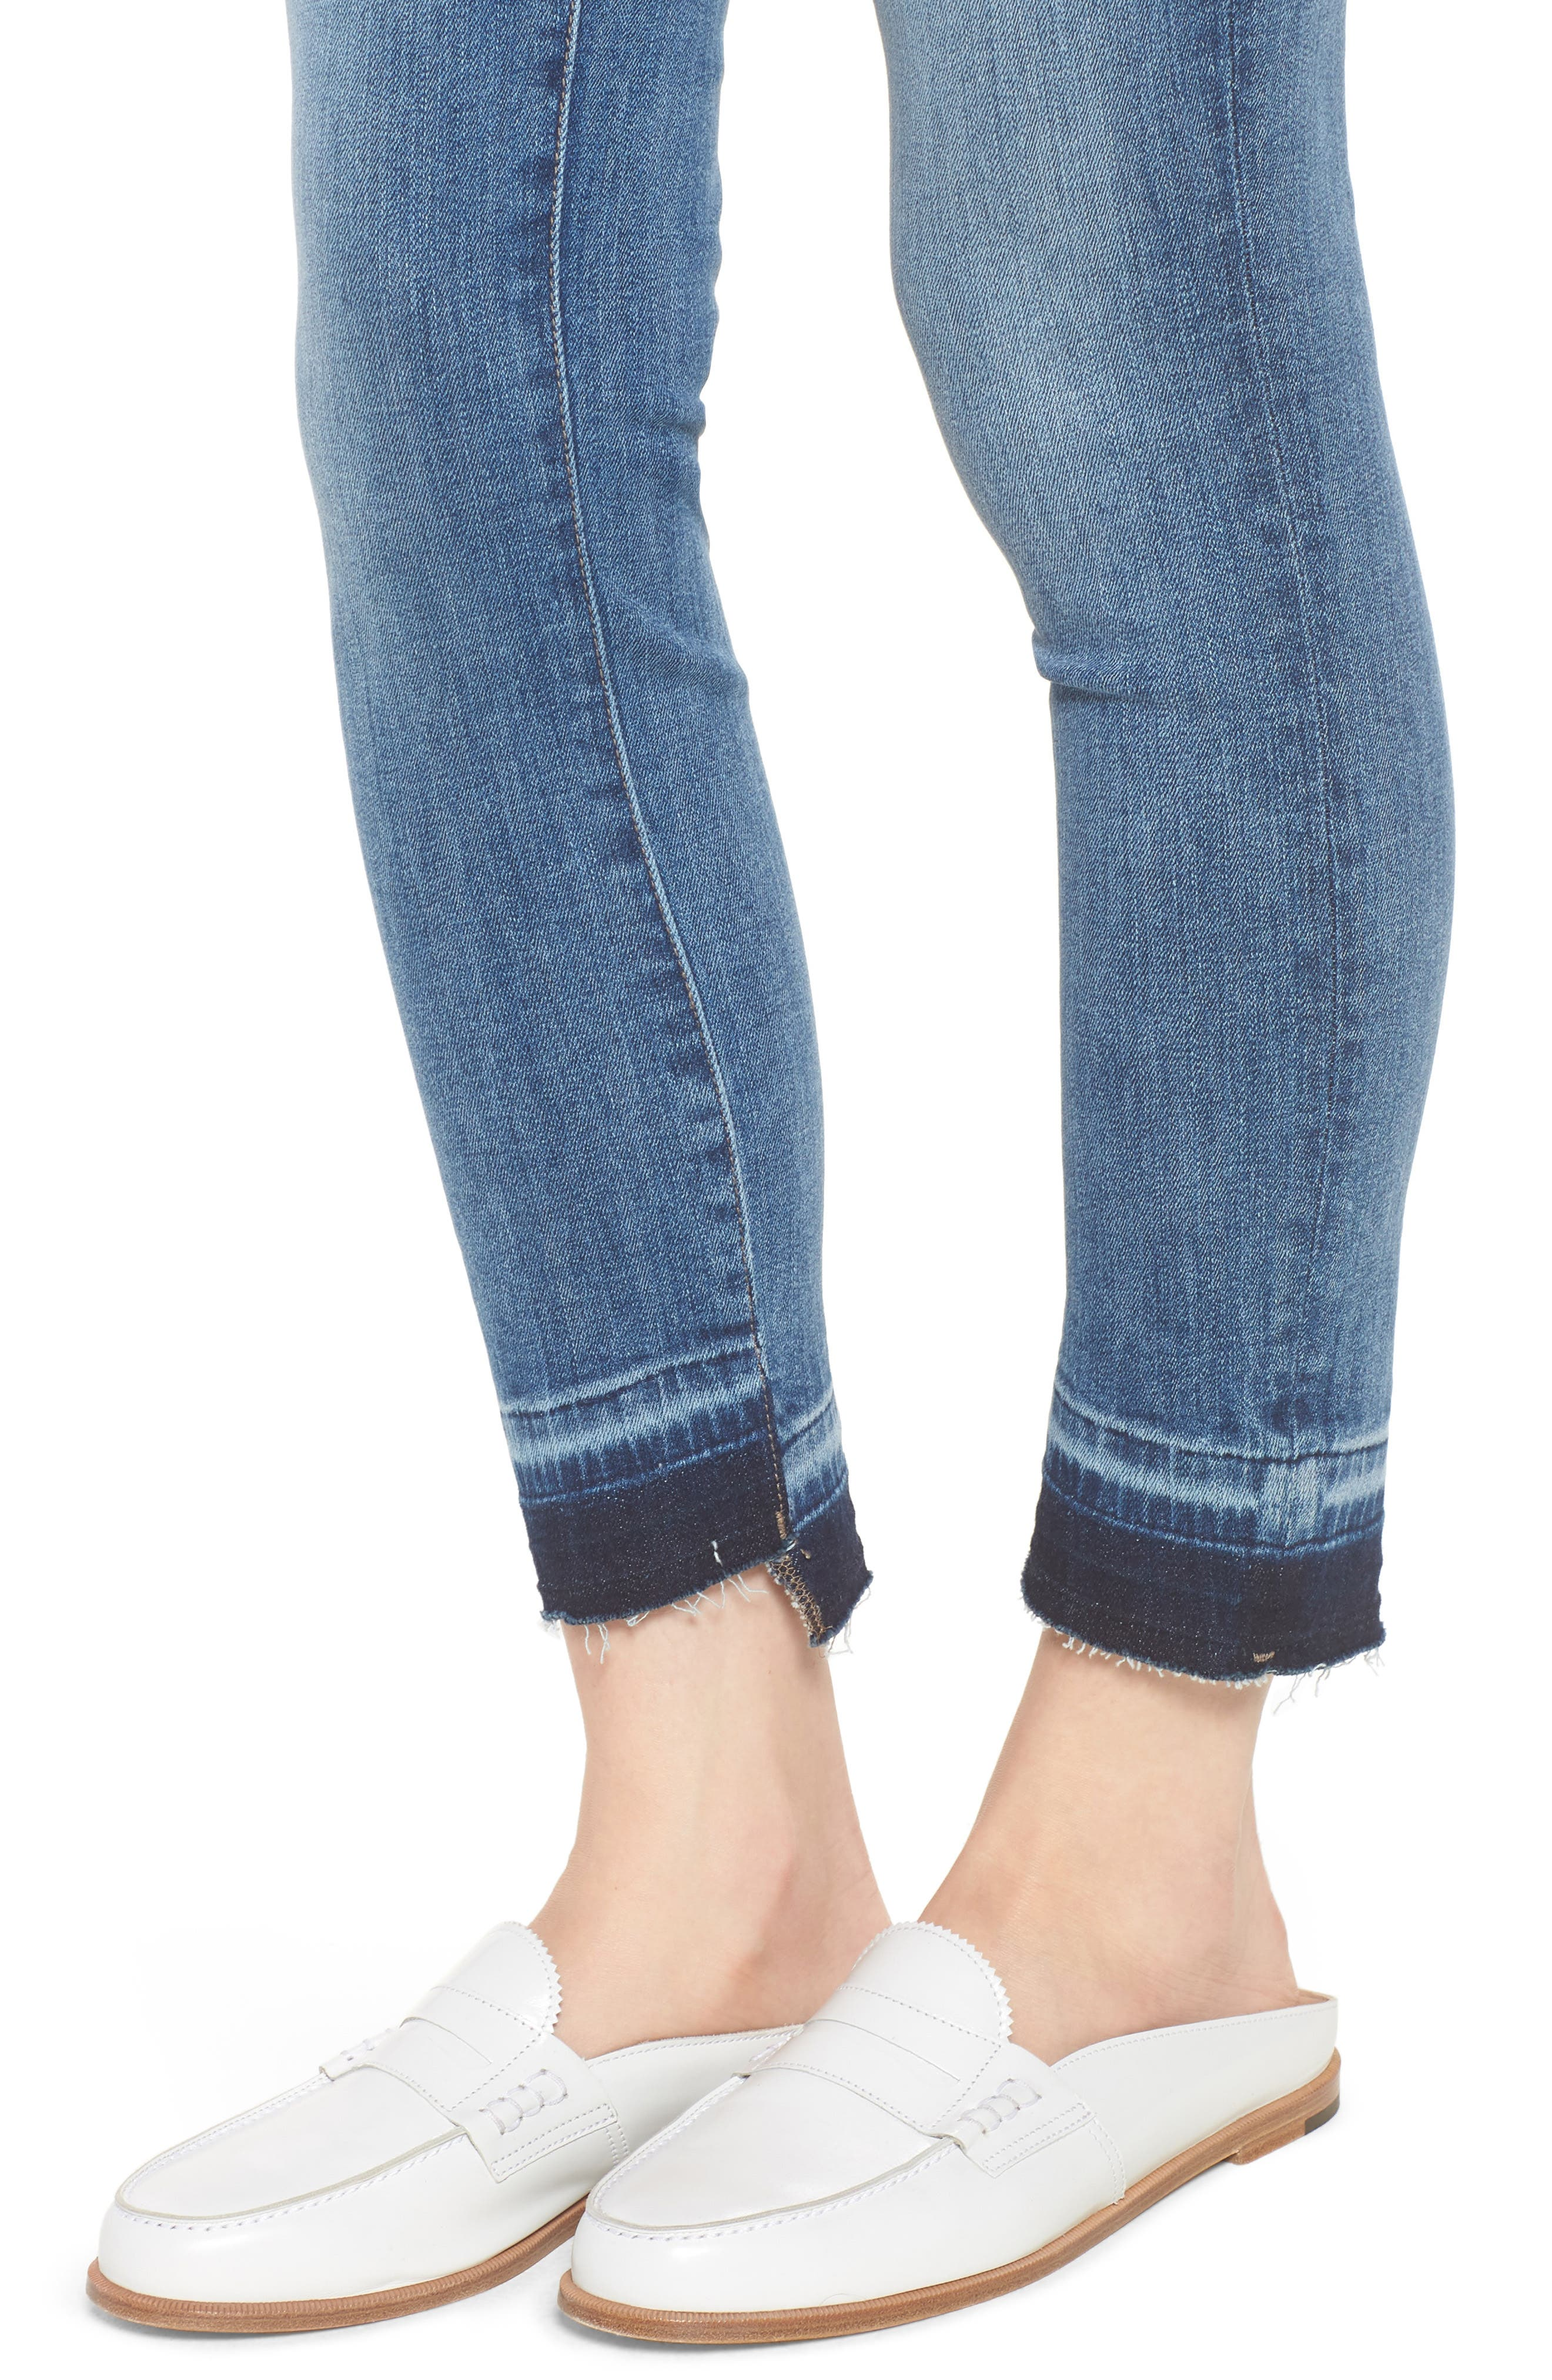 Margaux Instasculpt Ankle Skinny Jeans,                             Alternate thumbnail 4, color,                             Costa Mesa